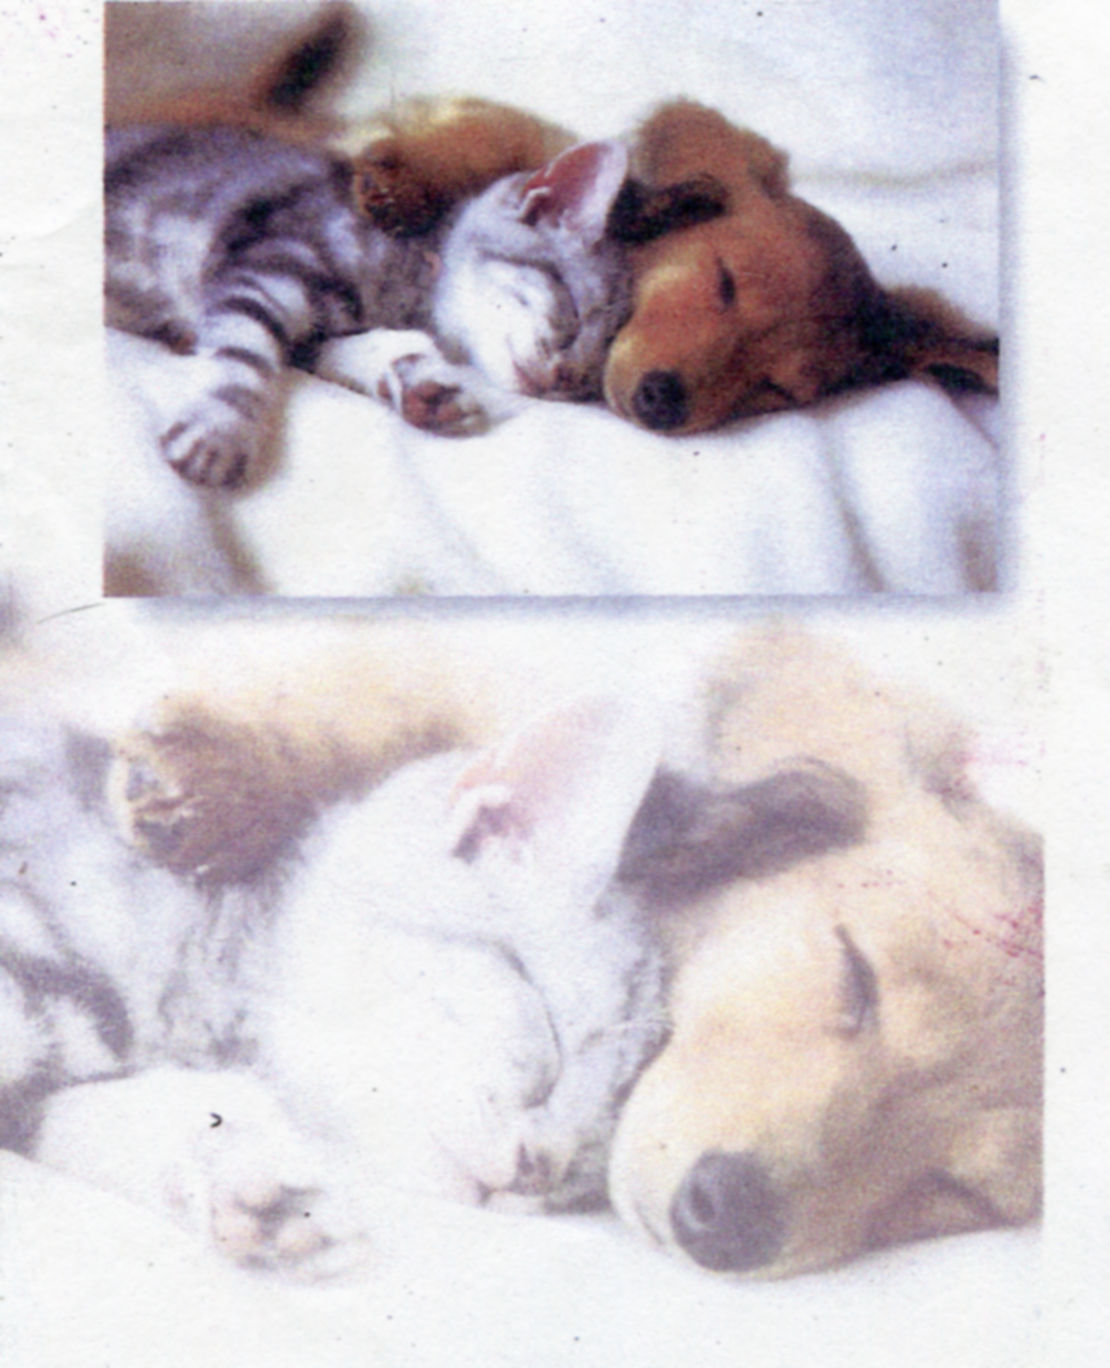 True - There IS a great affinity between Cats & Dachsies\\n\\n05/04/2013 12:45